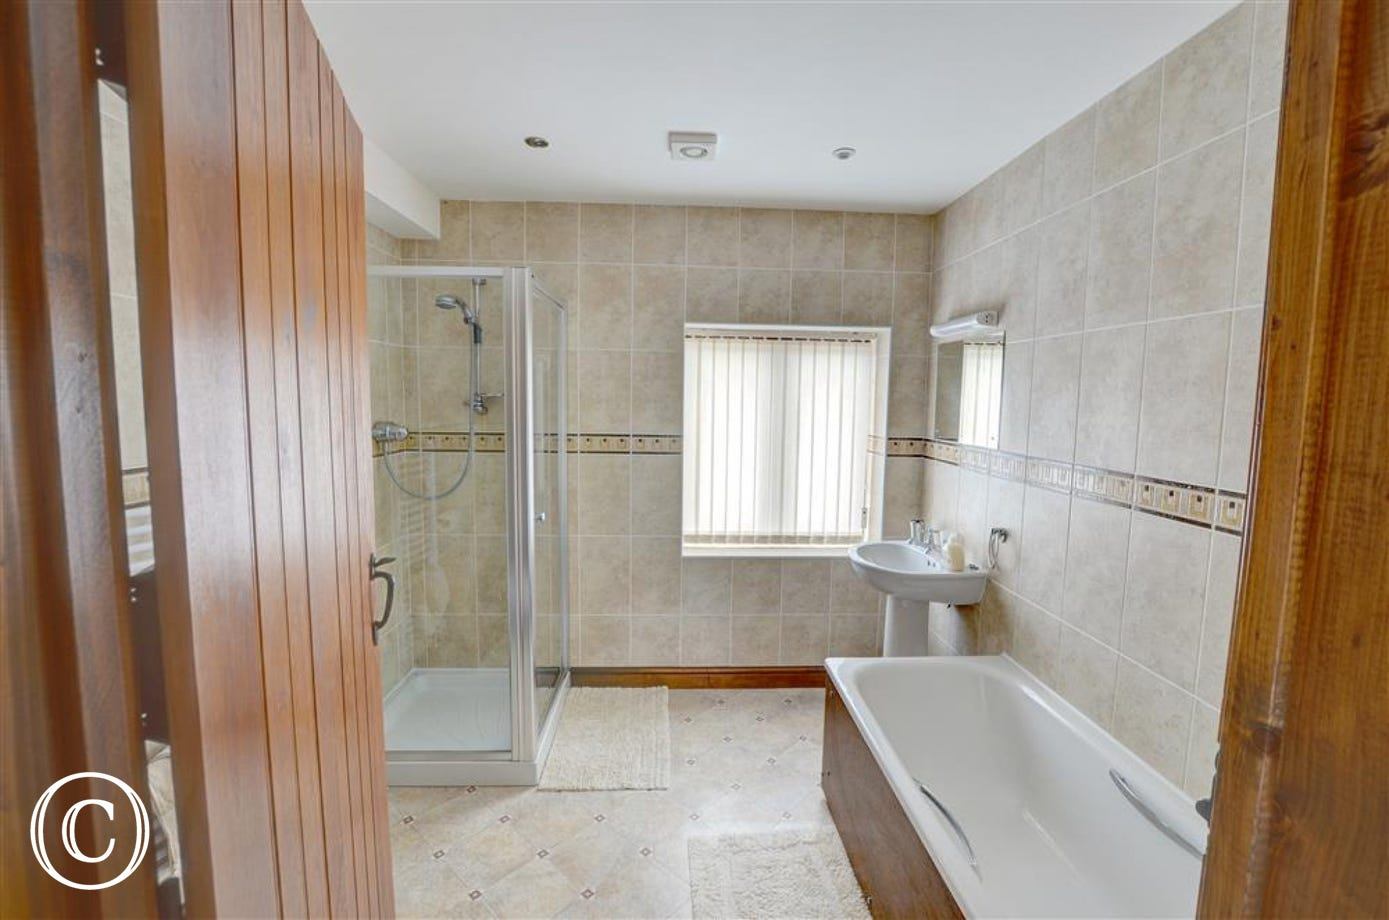 The bathroom is fully tiled, with a bath and separate shower cubicle